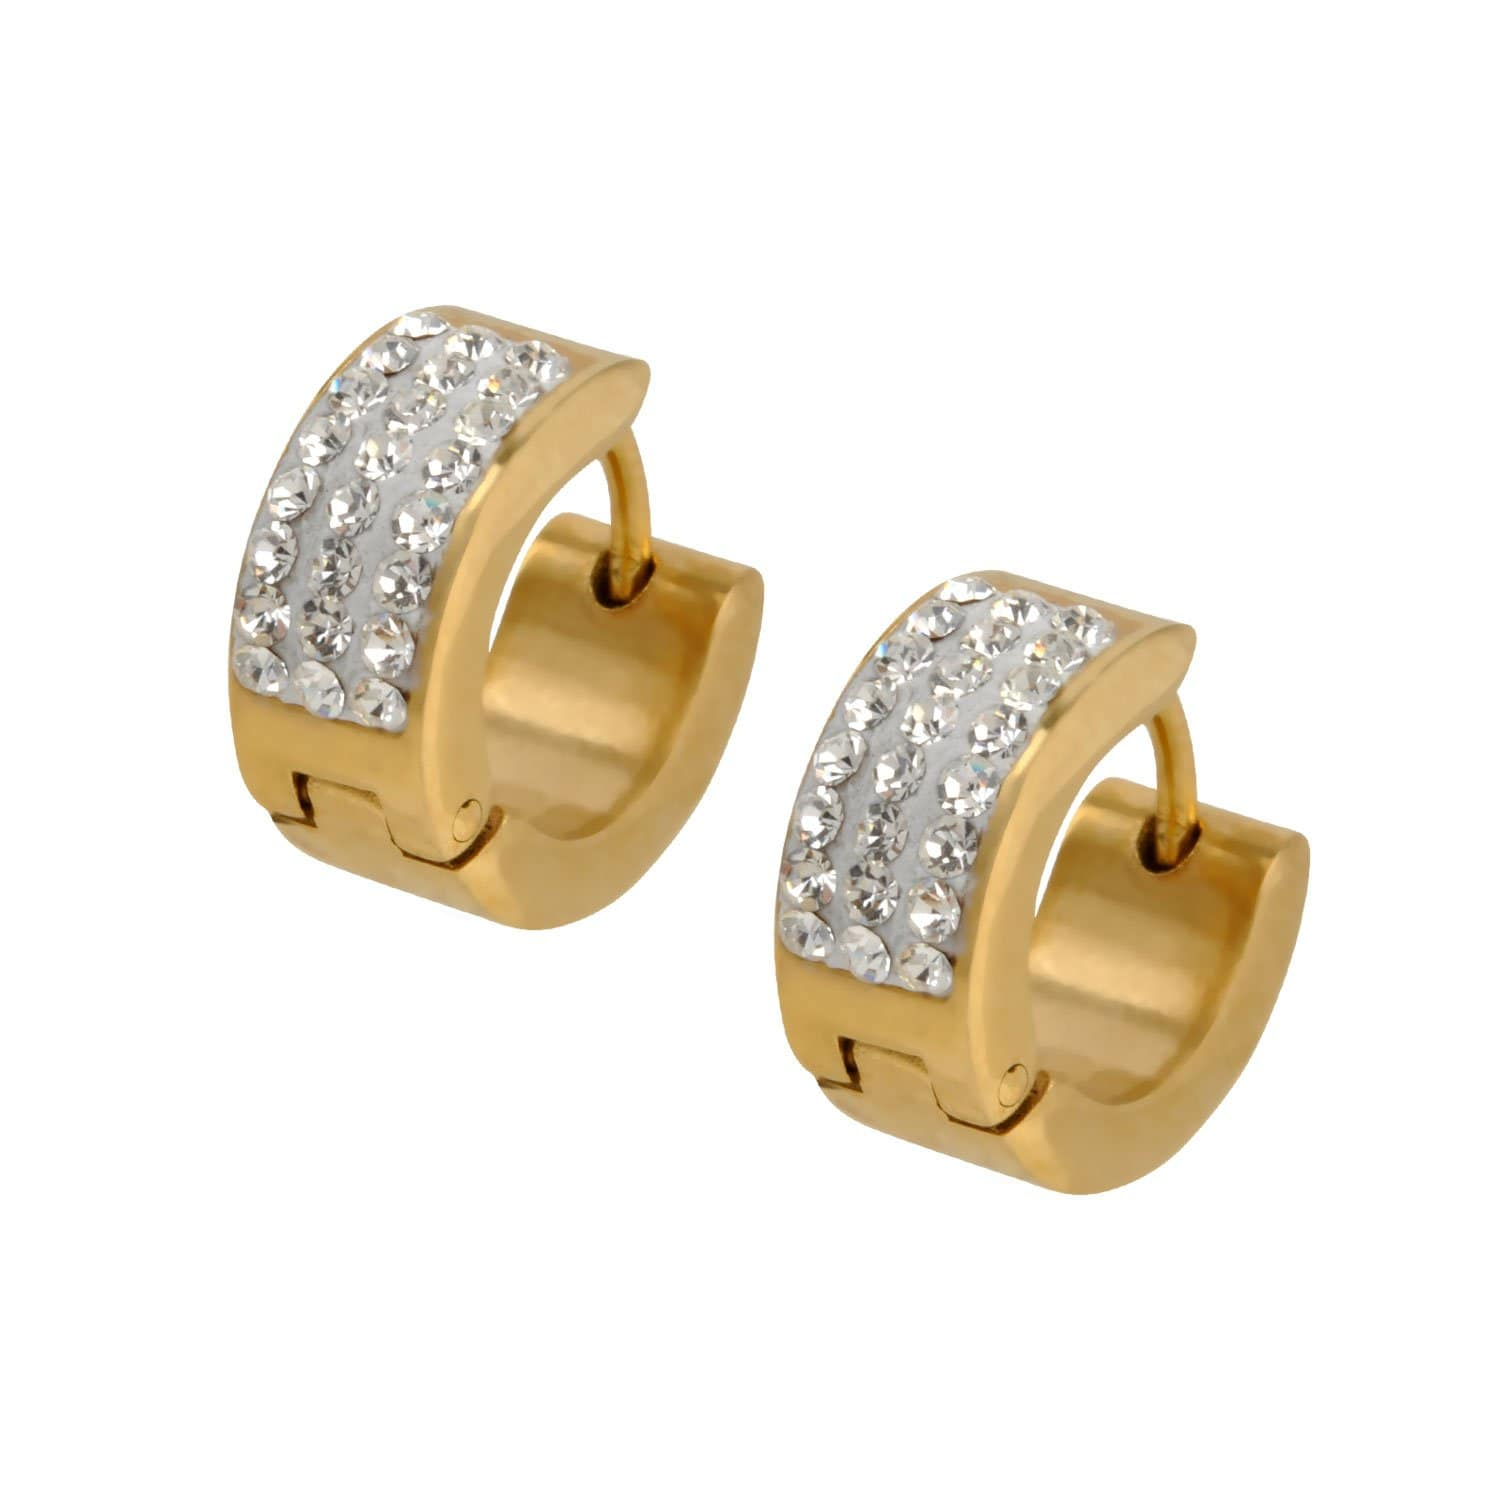 Gold Stainless Steel Triple Line White CZ Huggies Earrings